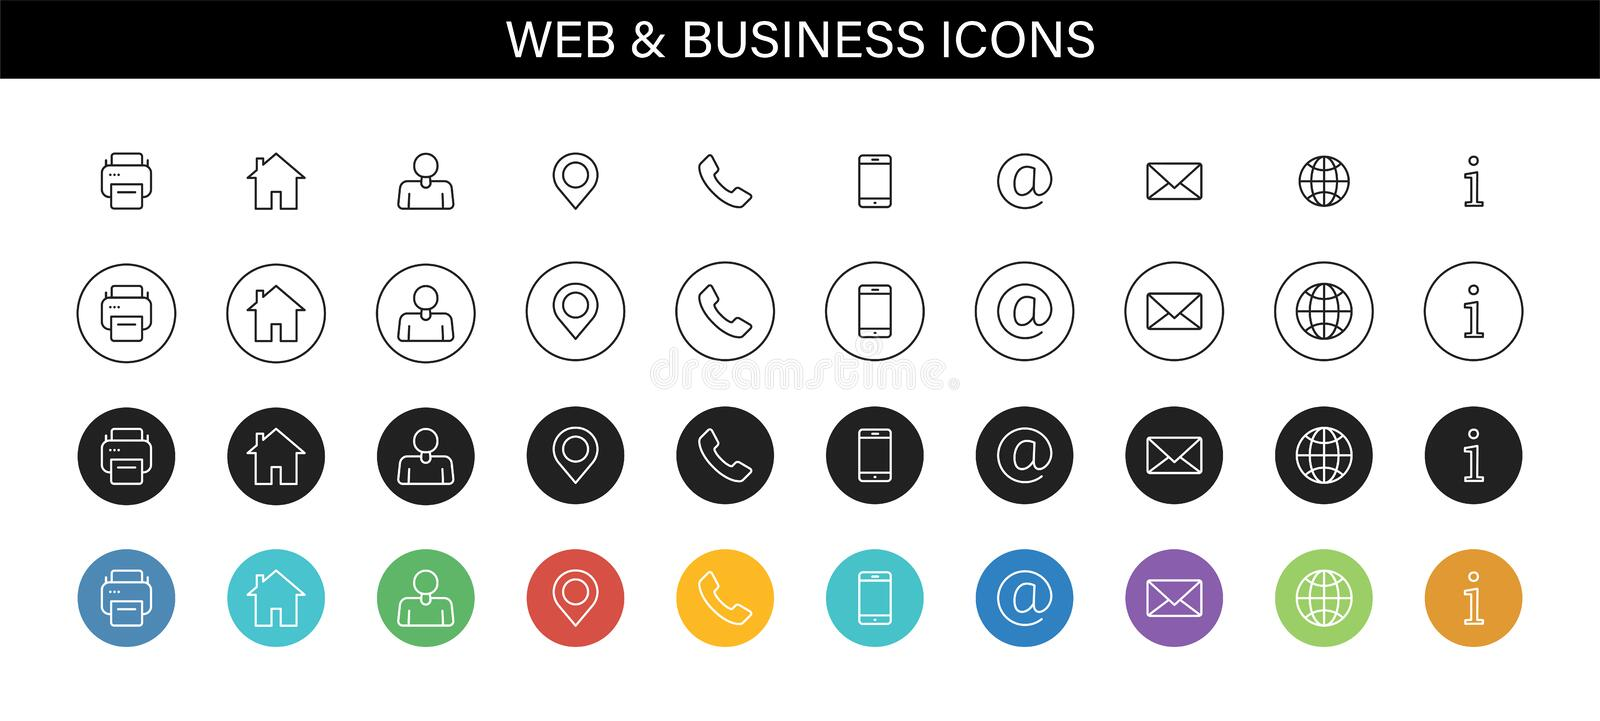 Set of Business Card icons. Name, phone, mobile, location, place, mail, fax, web. Contact us, information, communication. Vector vector illustration